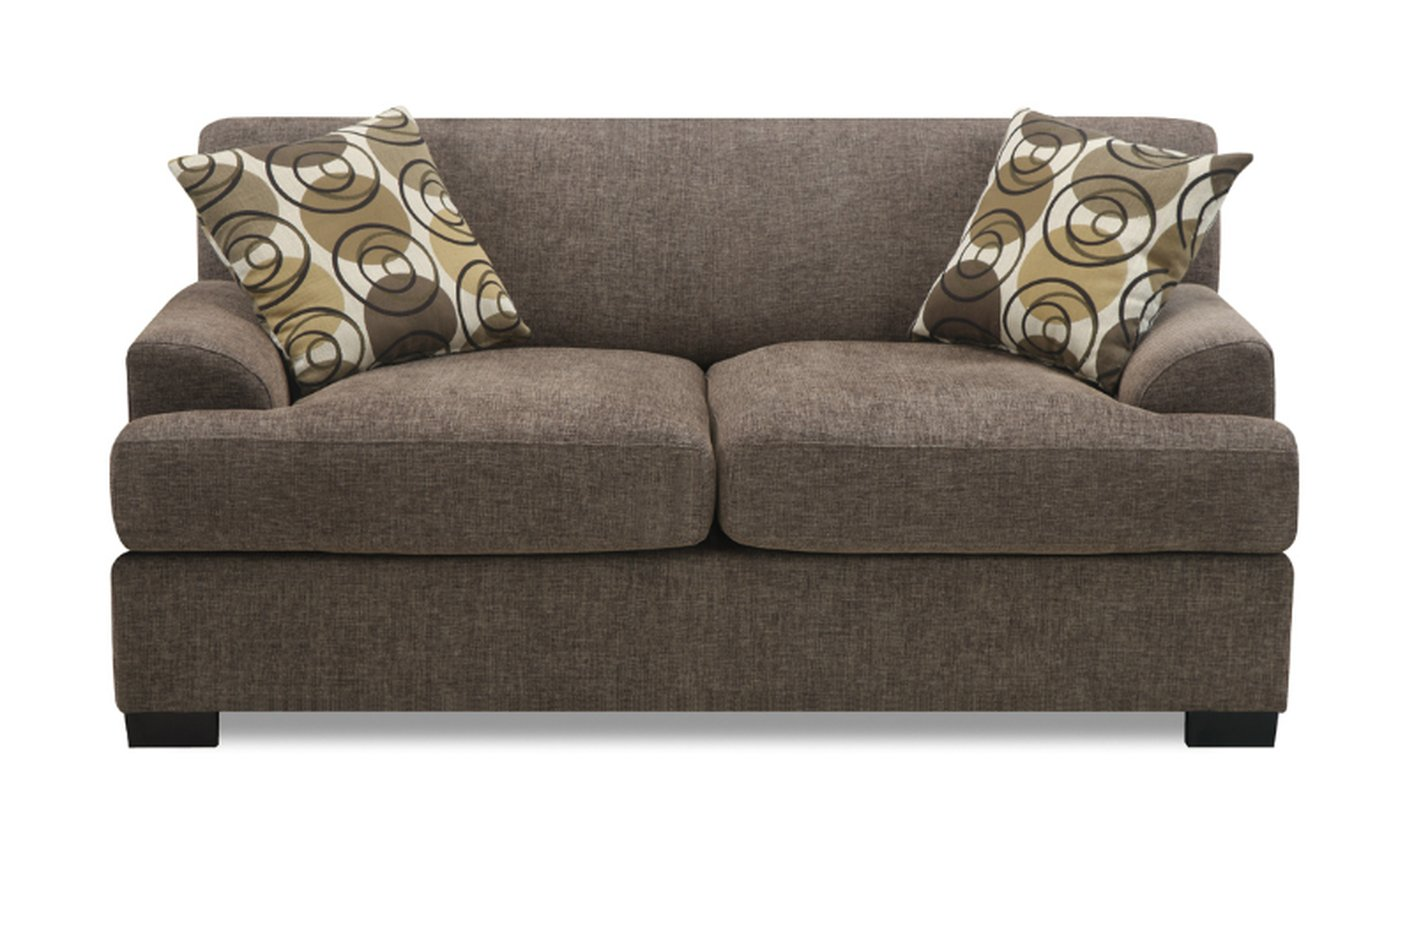 Beige Fabric Loveseat Steal A Sofa Furniture Outlet Los